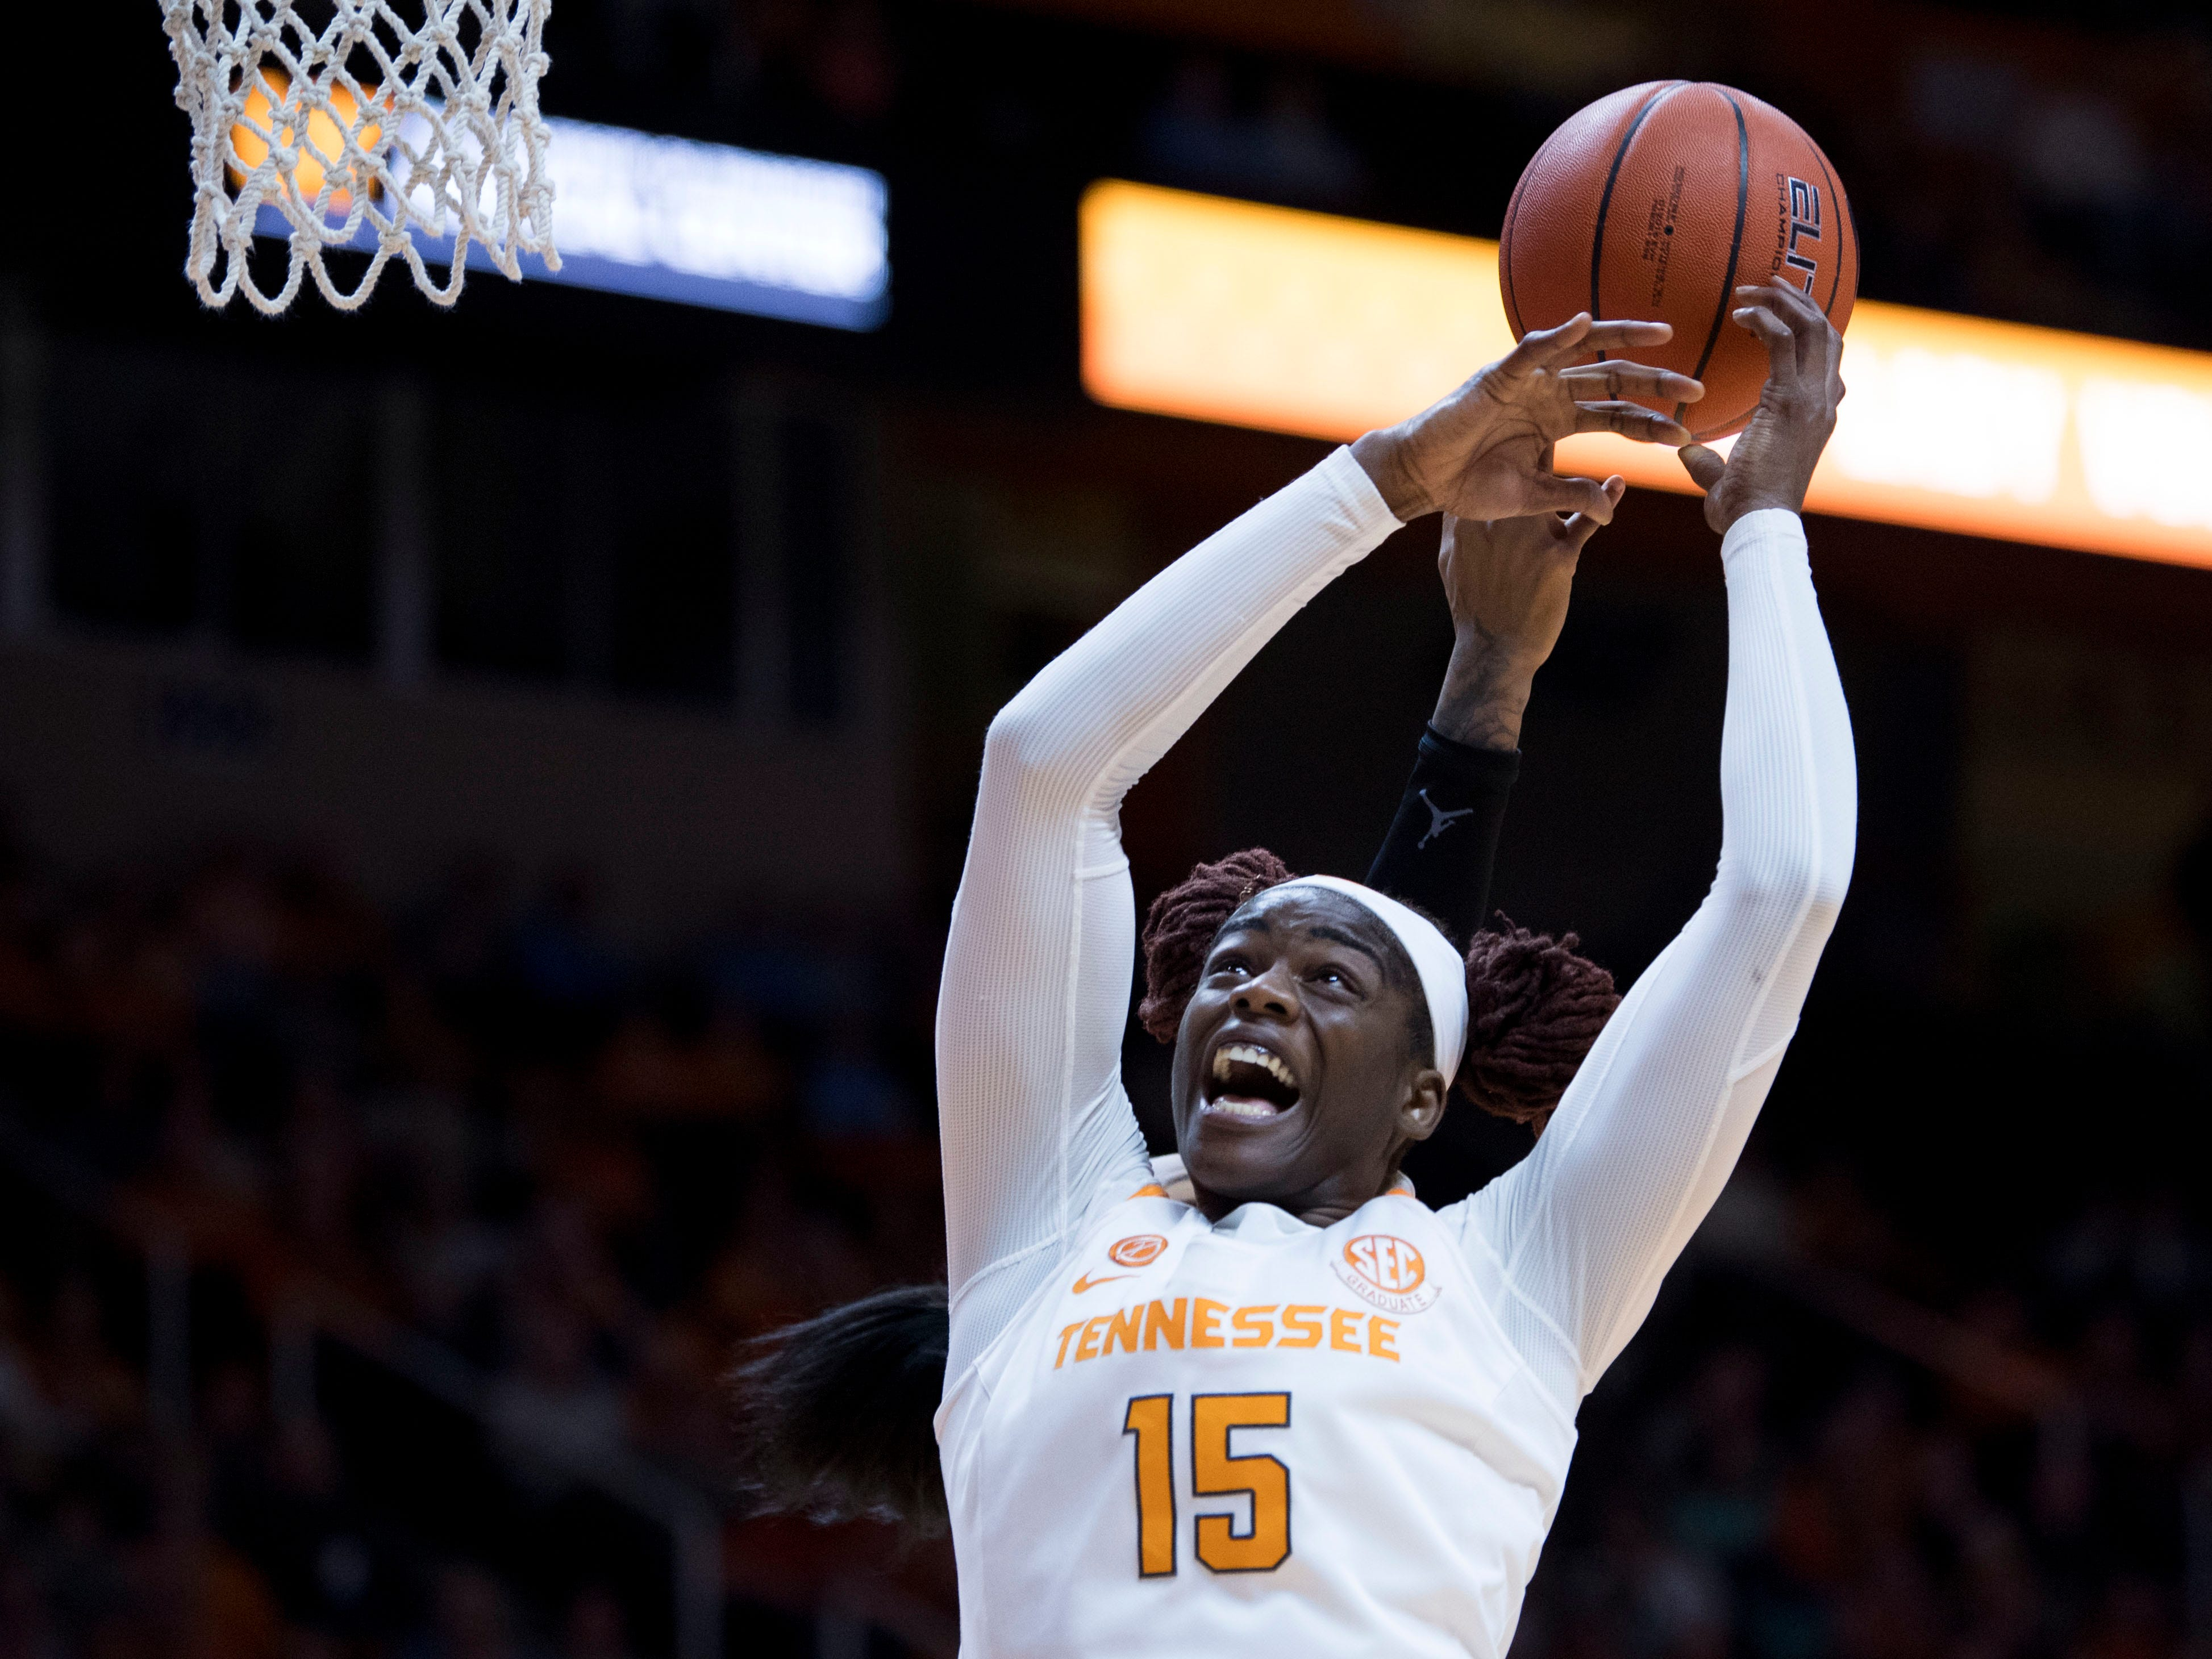 Tennessee's Cheridene Green (15) tries to get the rebound in the game against Florida on Thursday, January 31, 2019. Green finished the game with a double double.